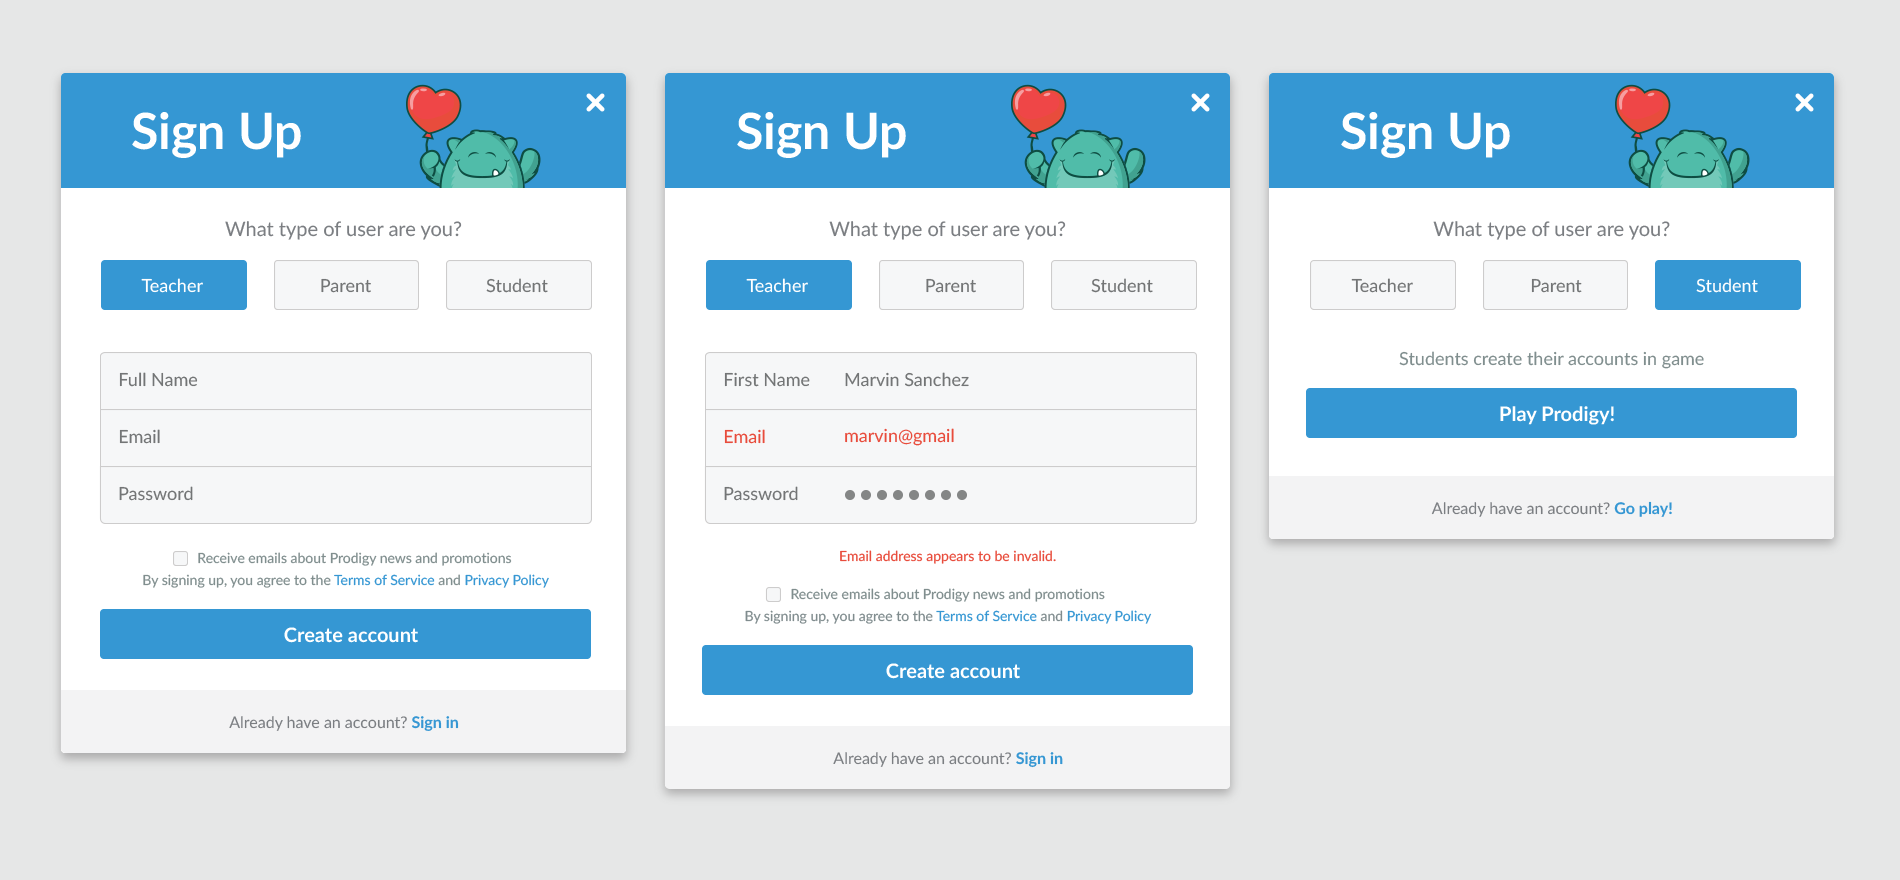 Prodigy Sign-Up - UpLabs